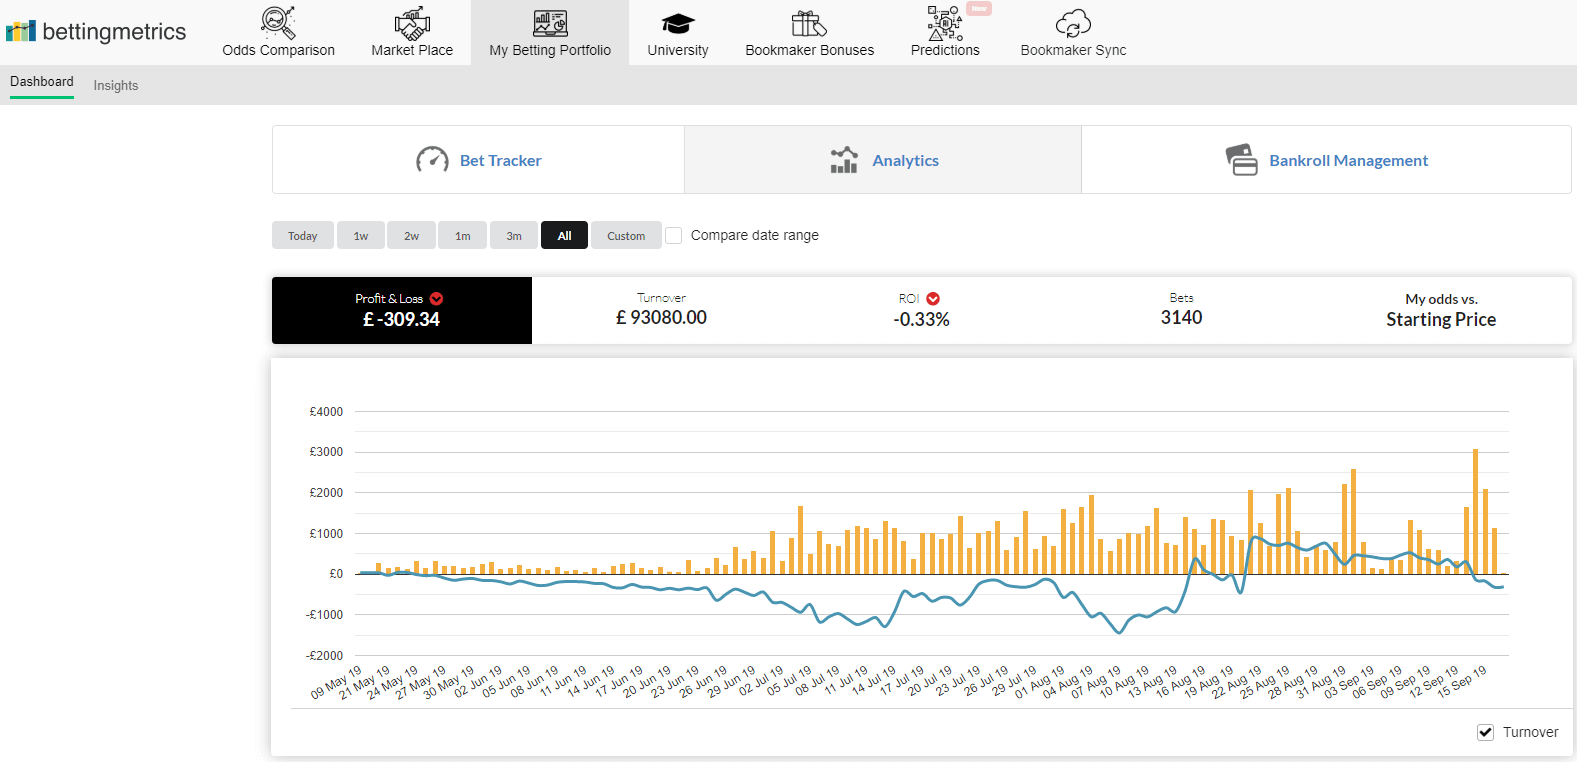 Week 17 all time performance graph